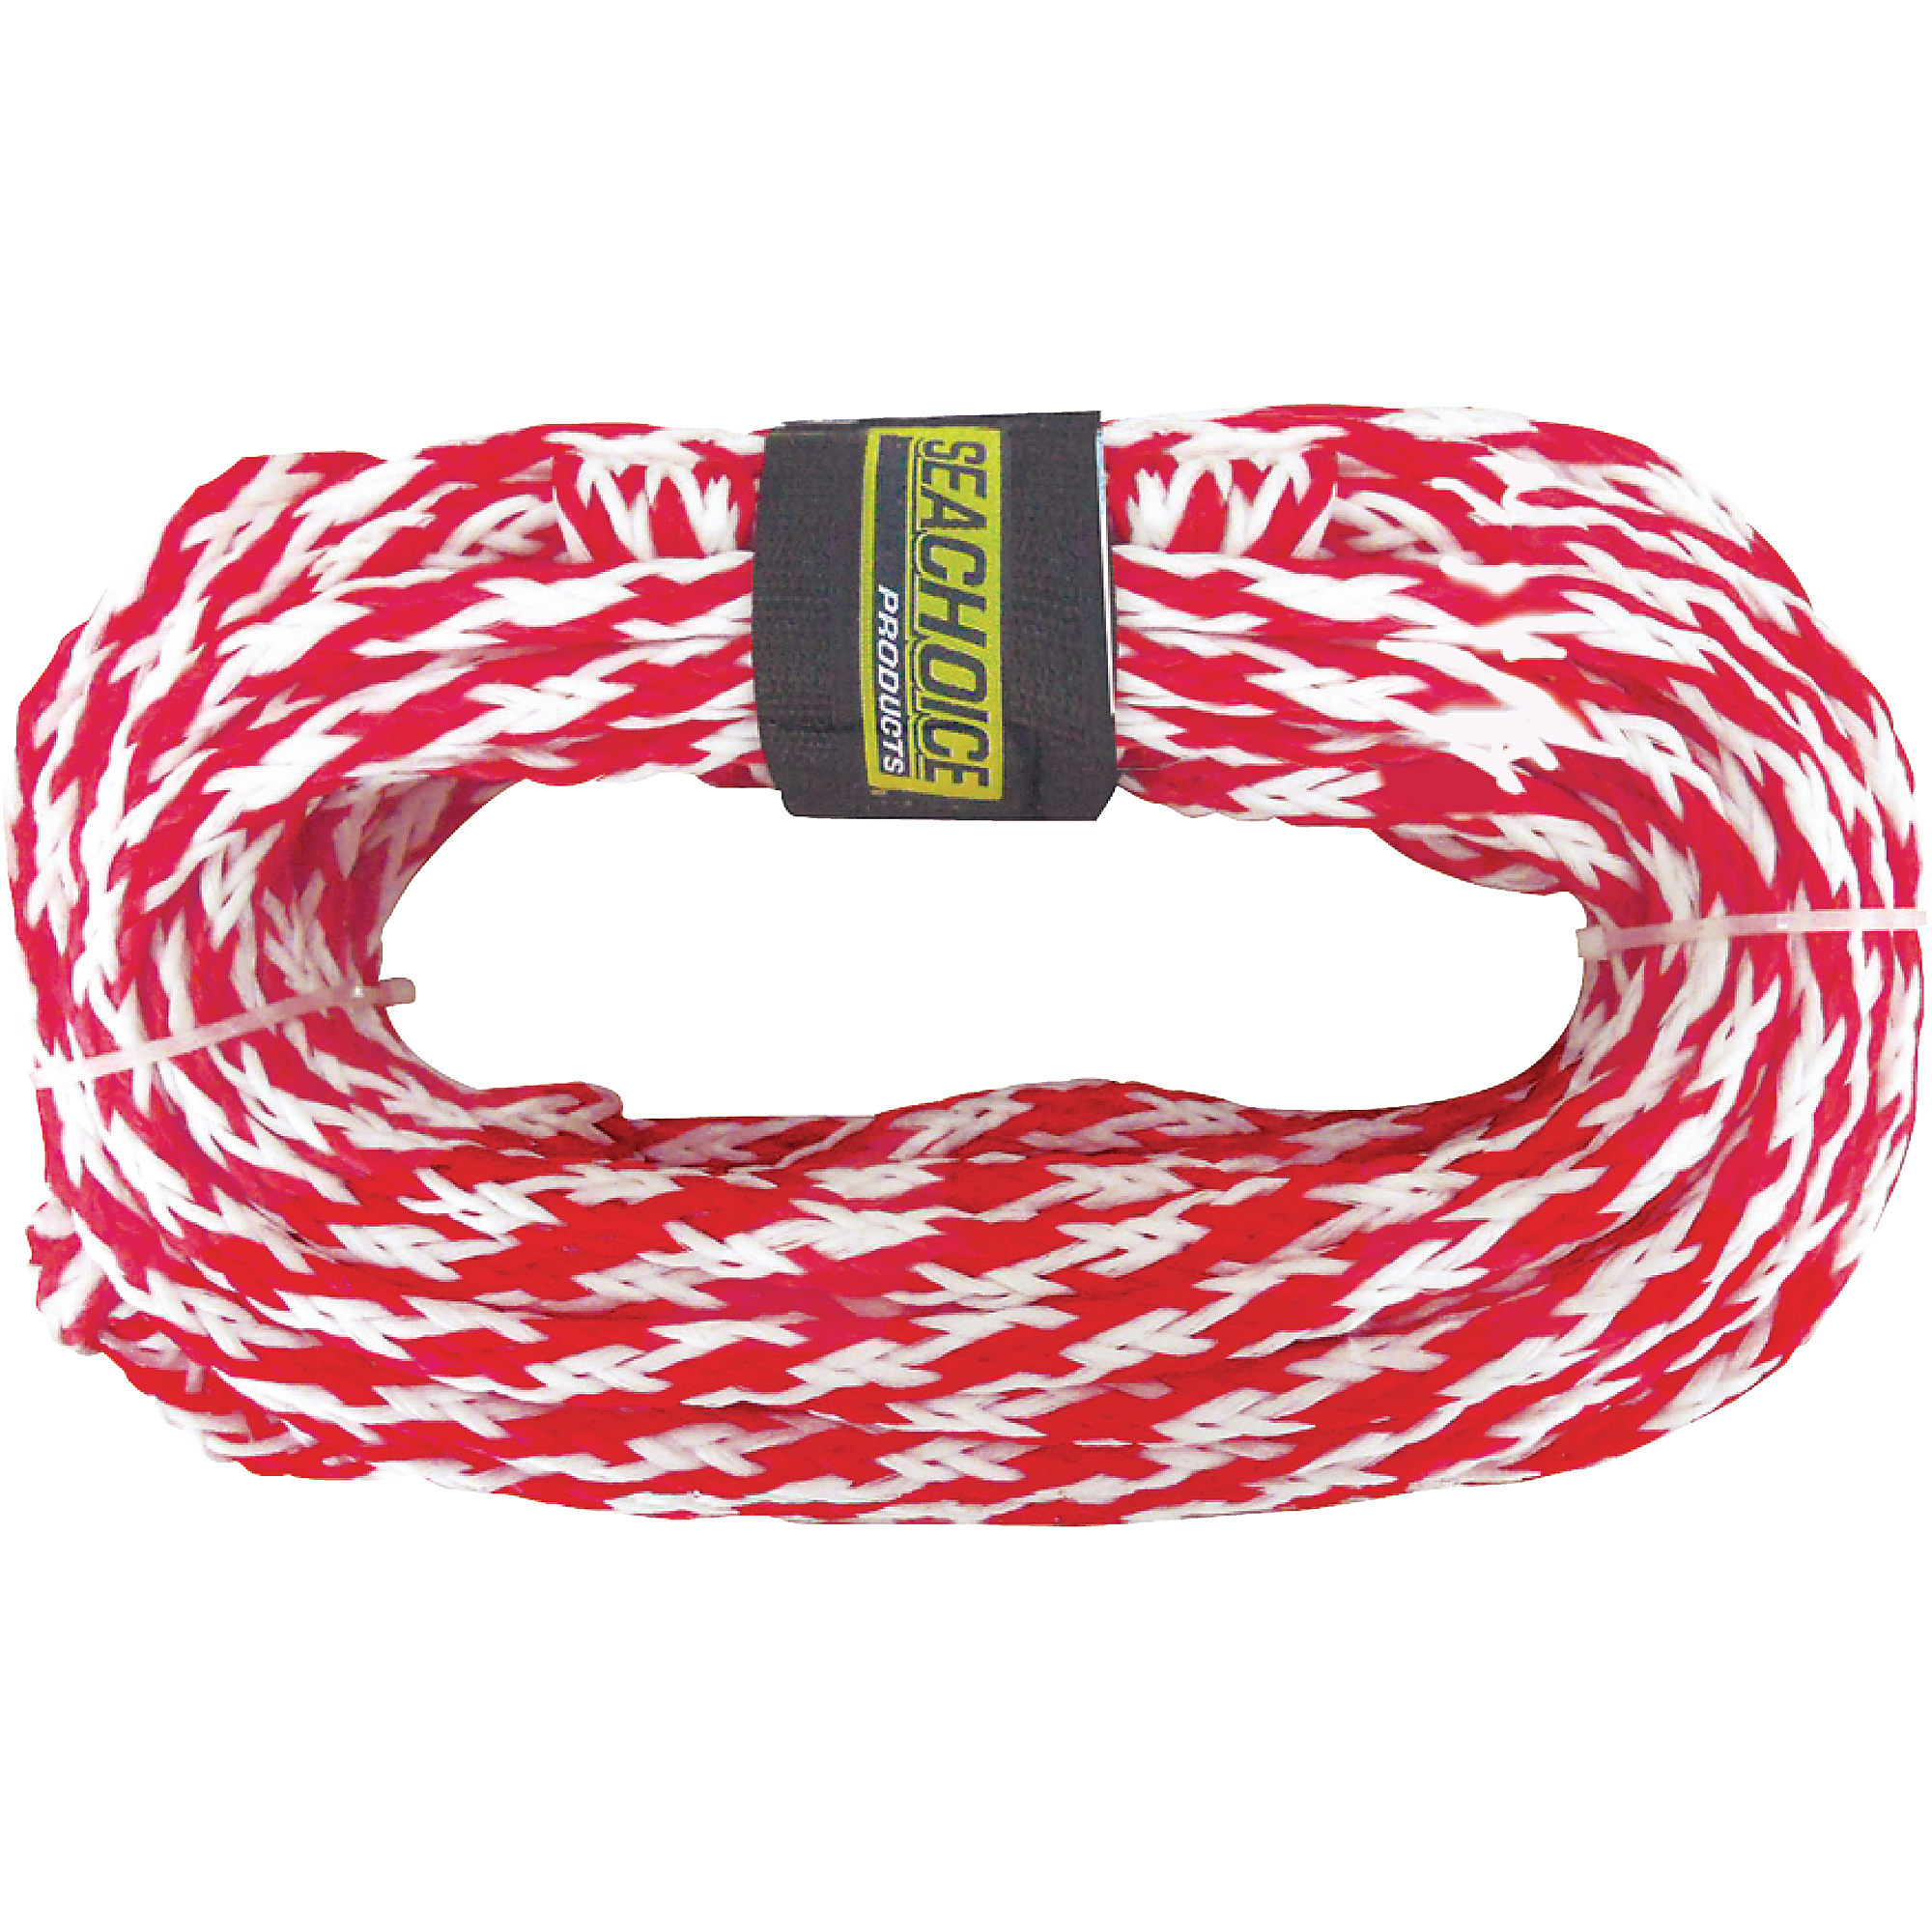 Seachoice Tow Rope for 2 Riders, 60'